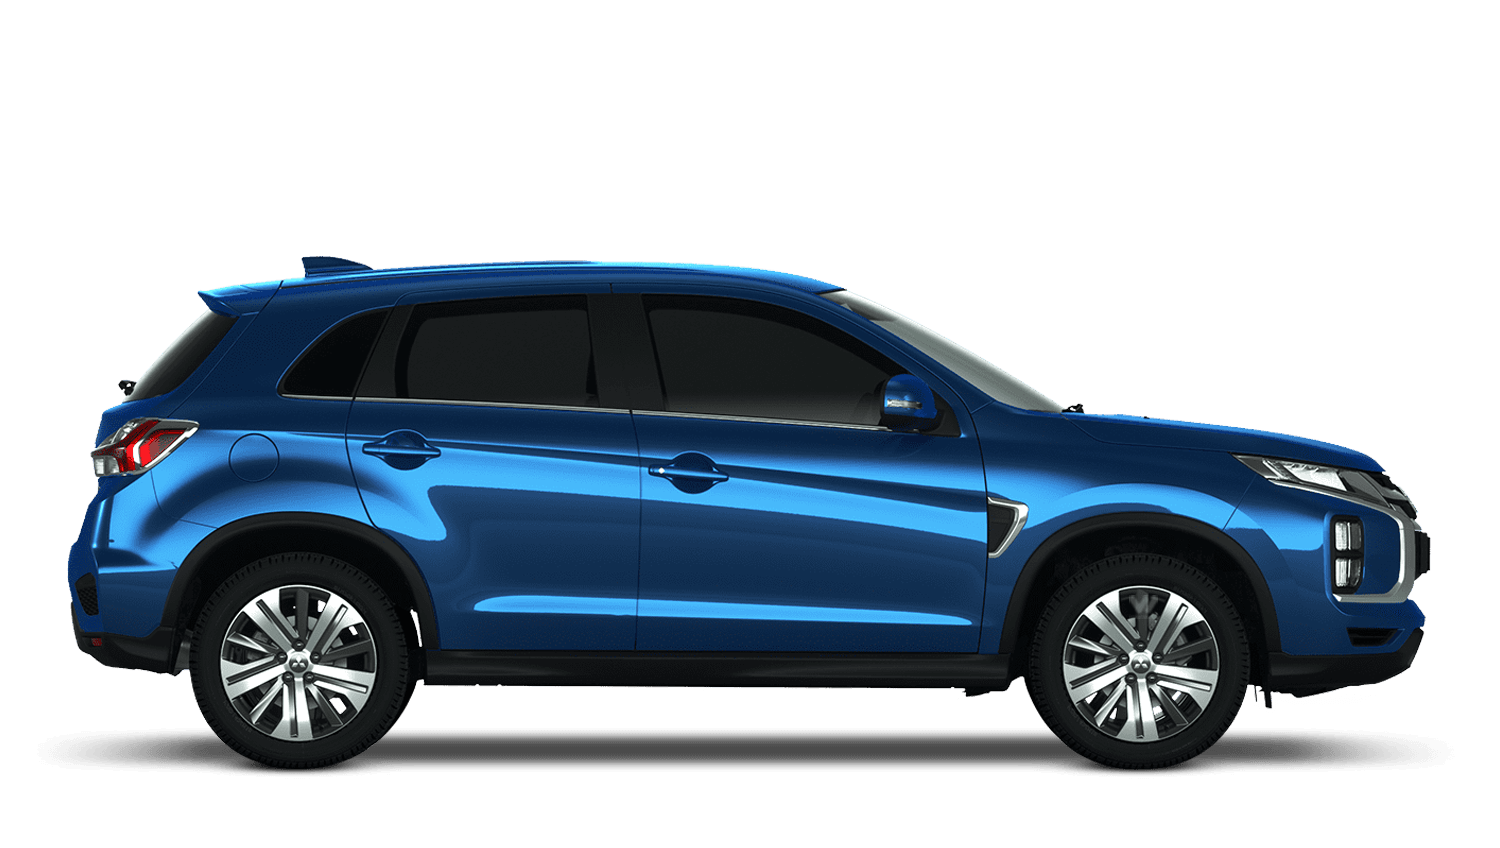 Lightning Blue Mitsubishi Asx New